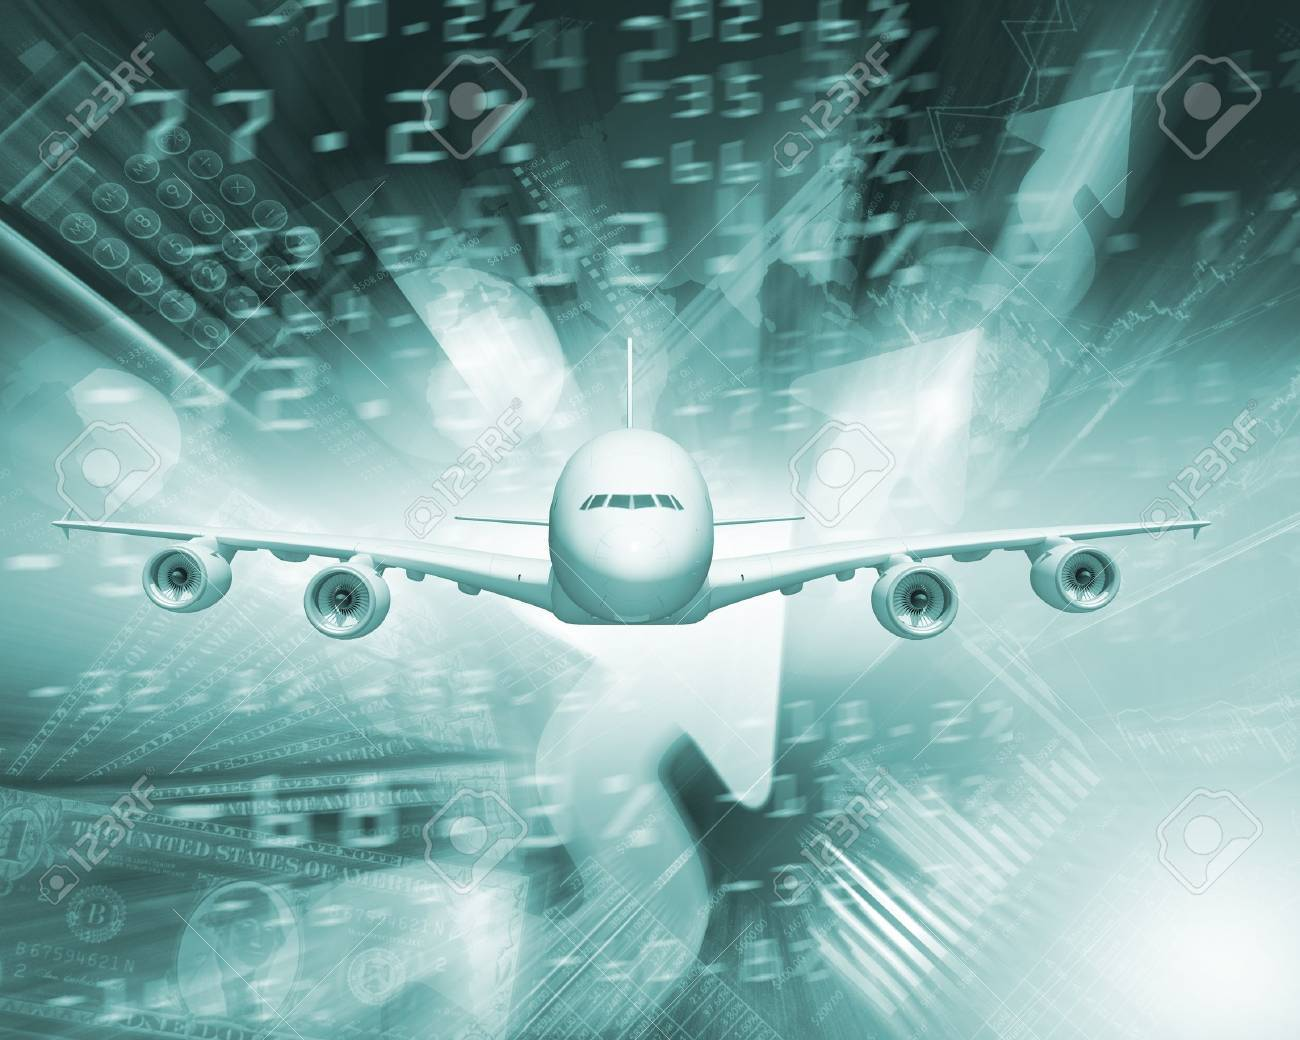 Image of a plane against business background Stock Photo - 15208056